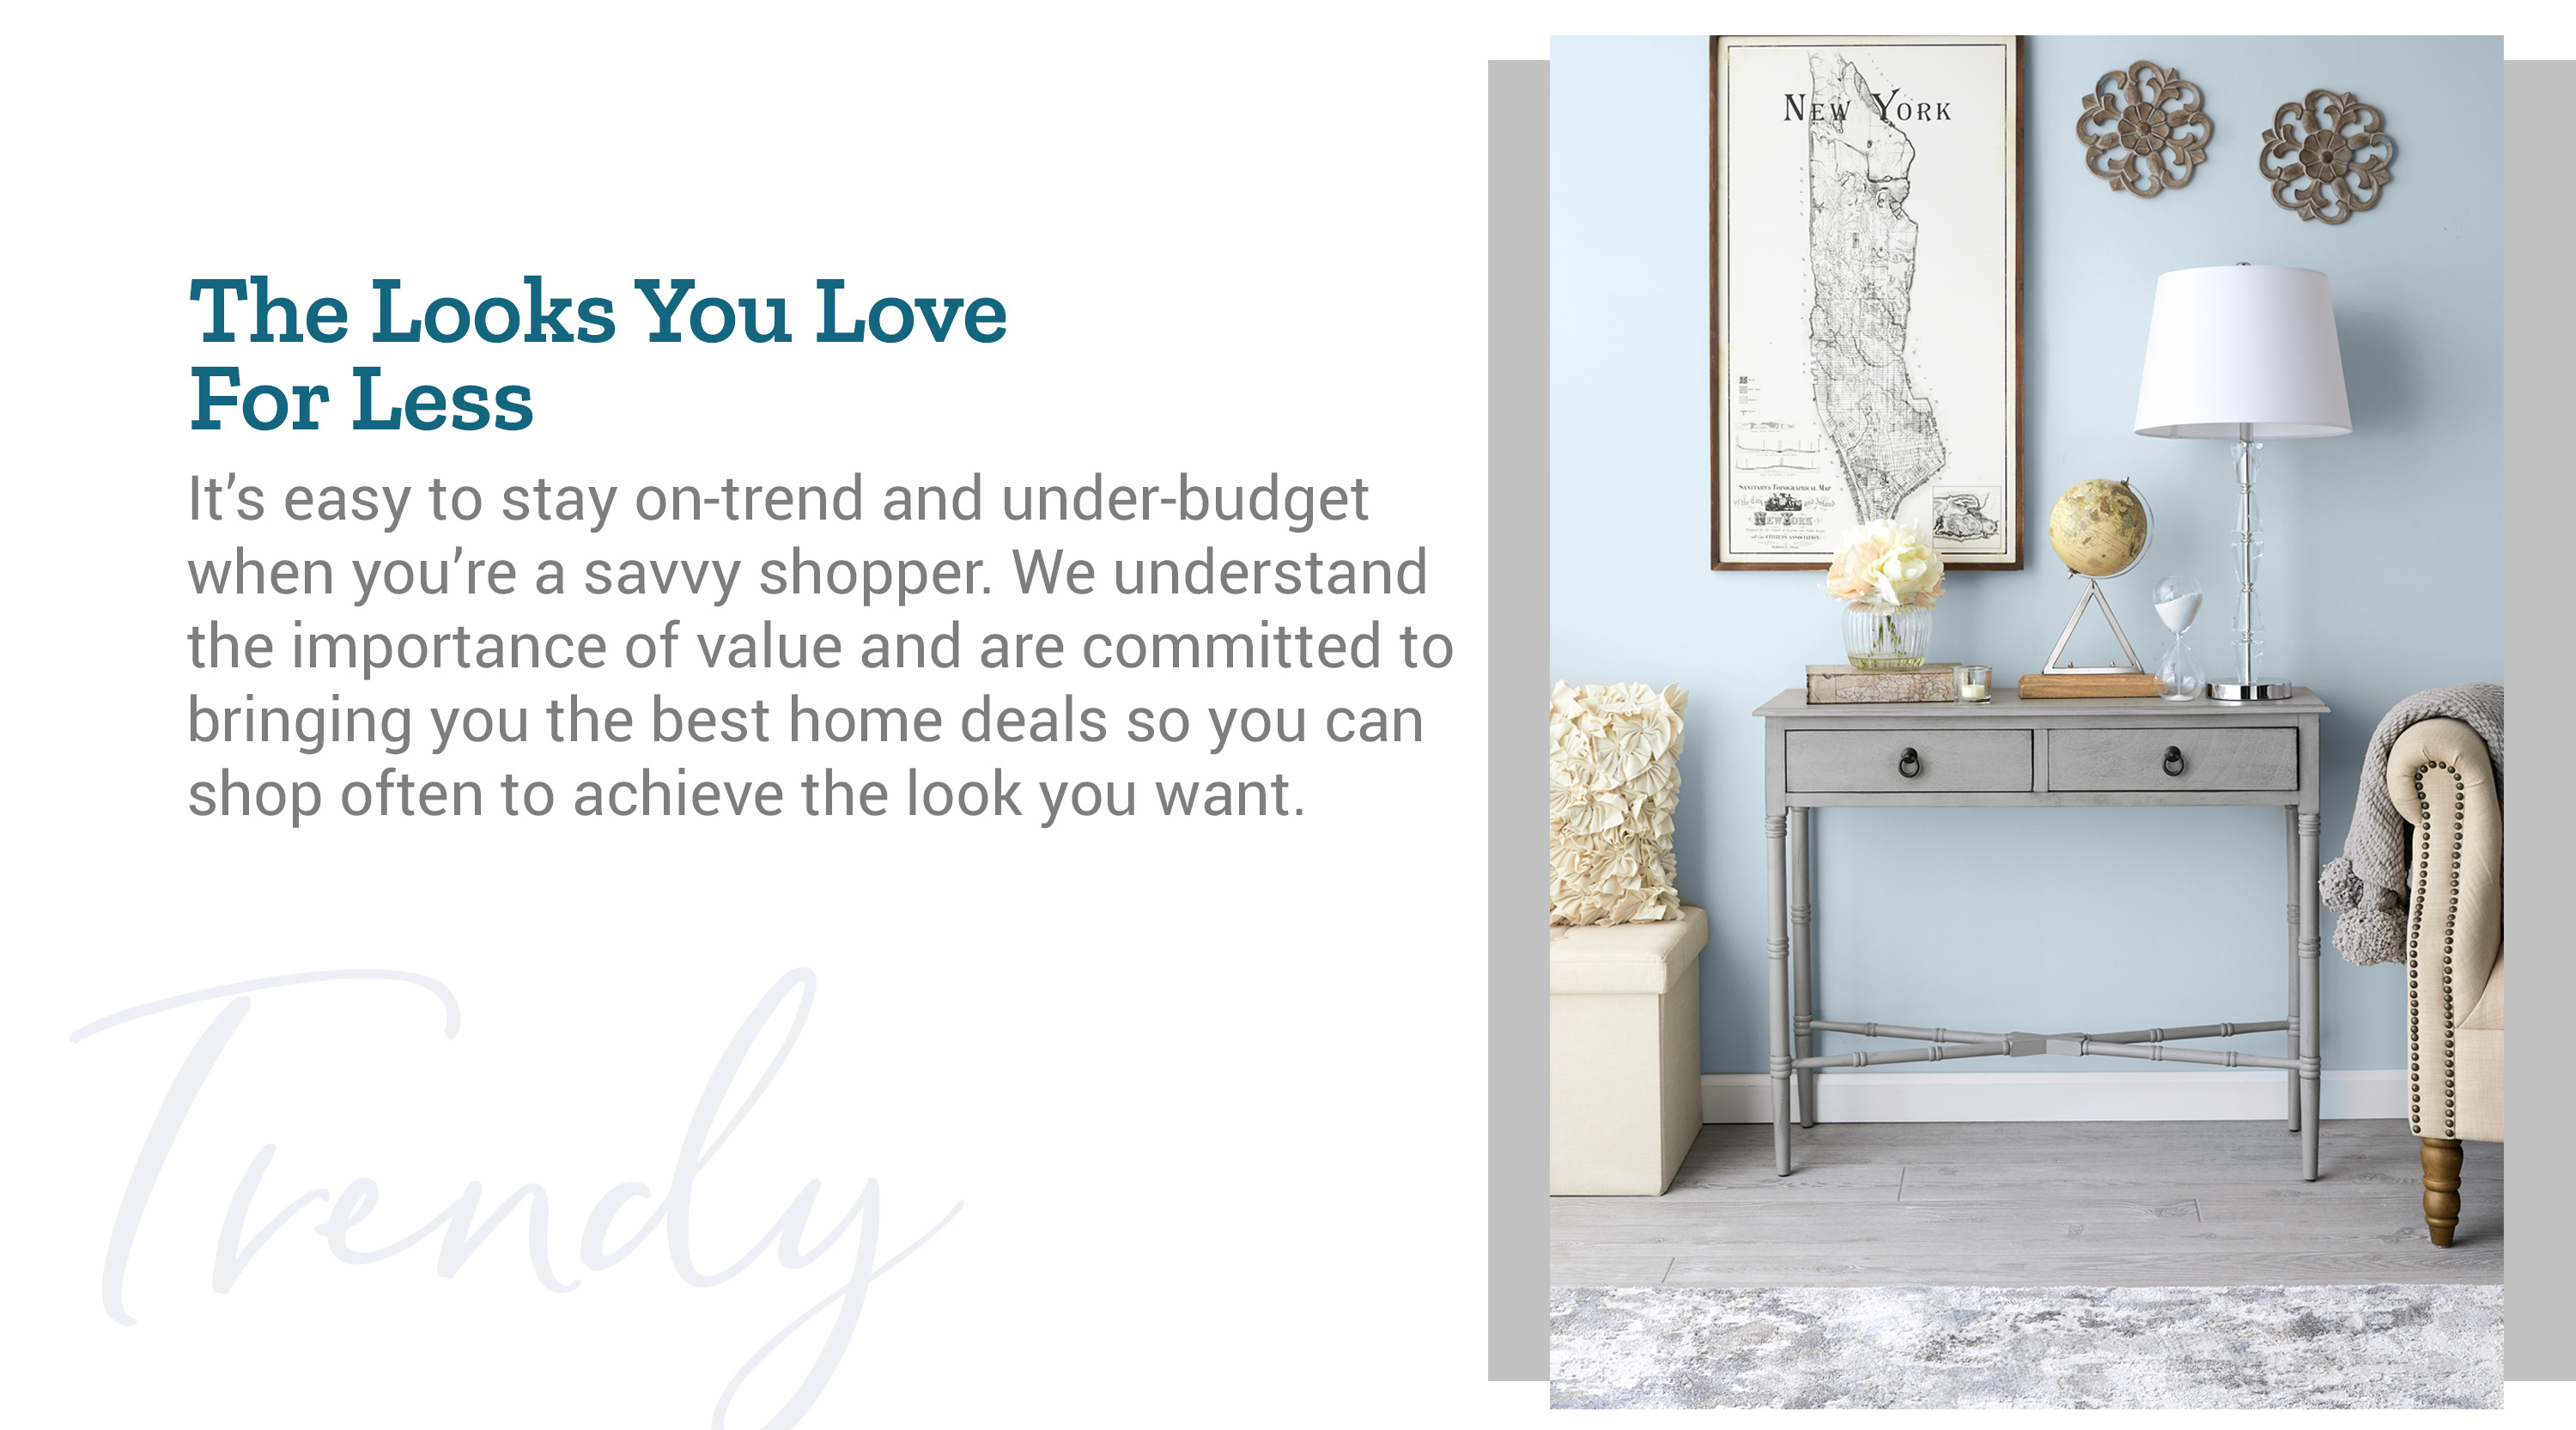 It's easy to stay on-trend and under-budget when you're a savvy shopper. We understand the importance of value and are committed to bringing you the best home deals so you can shop often to achieve the look you want.